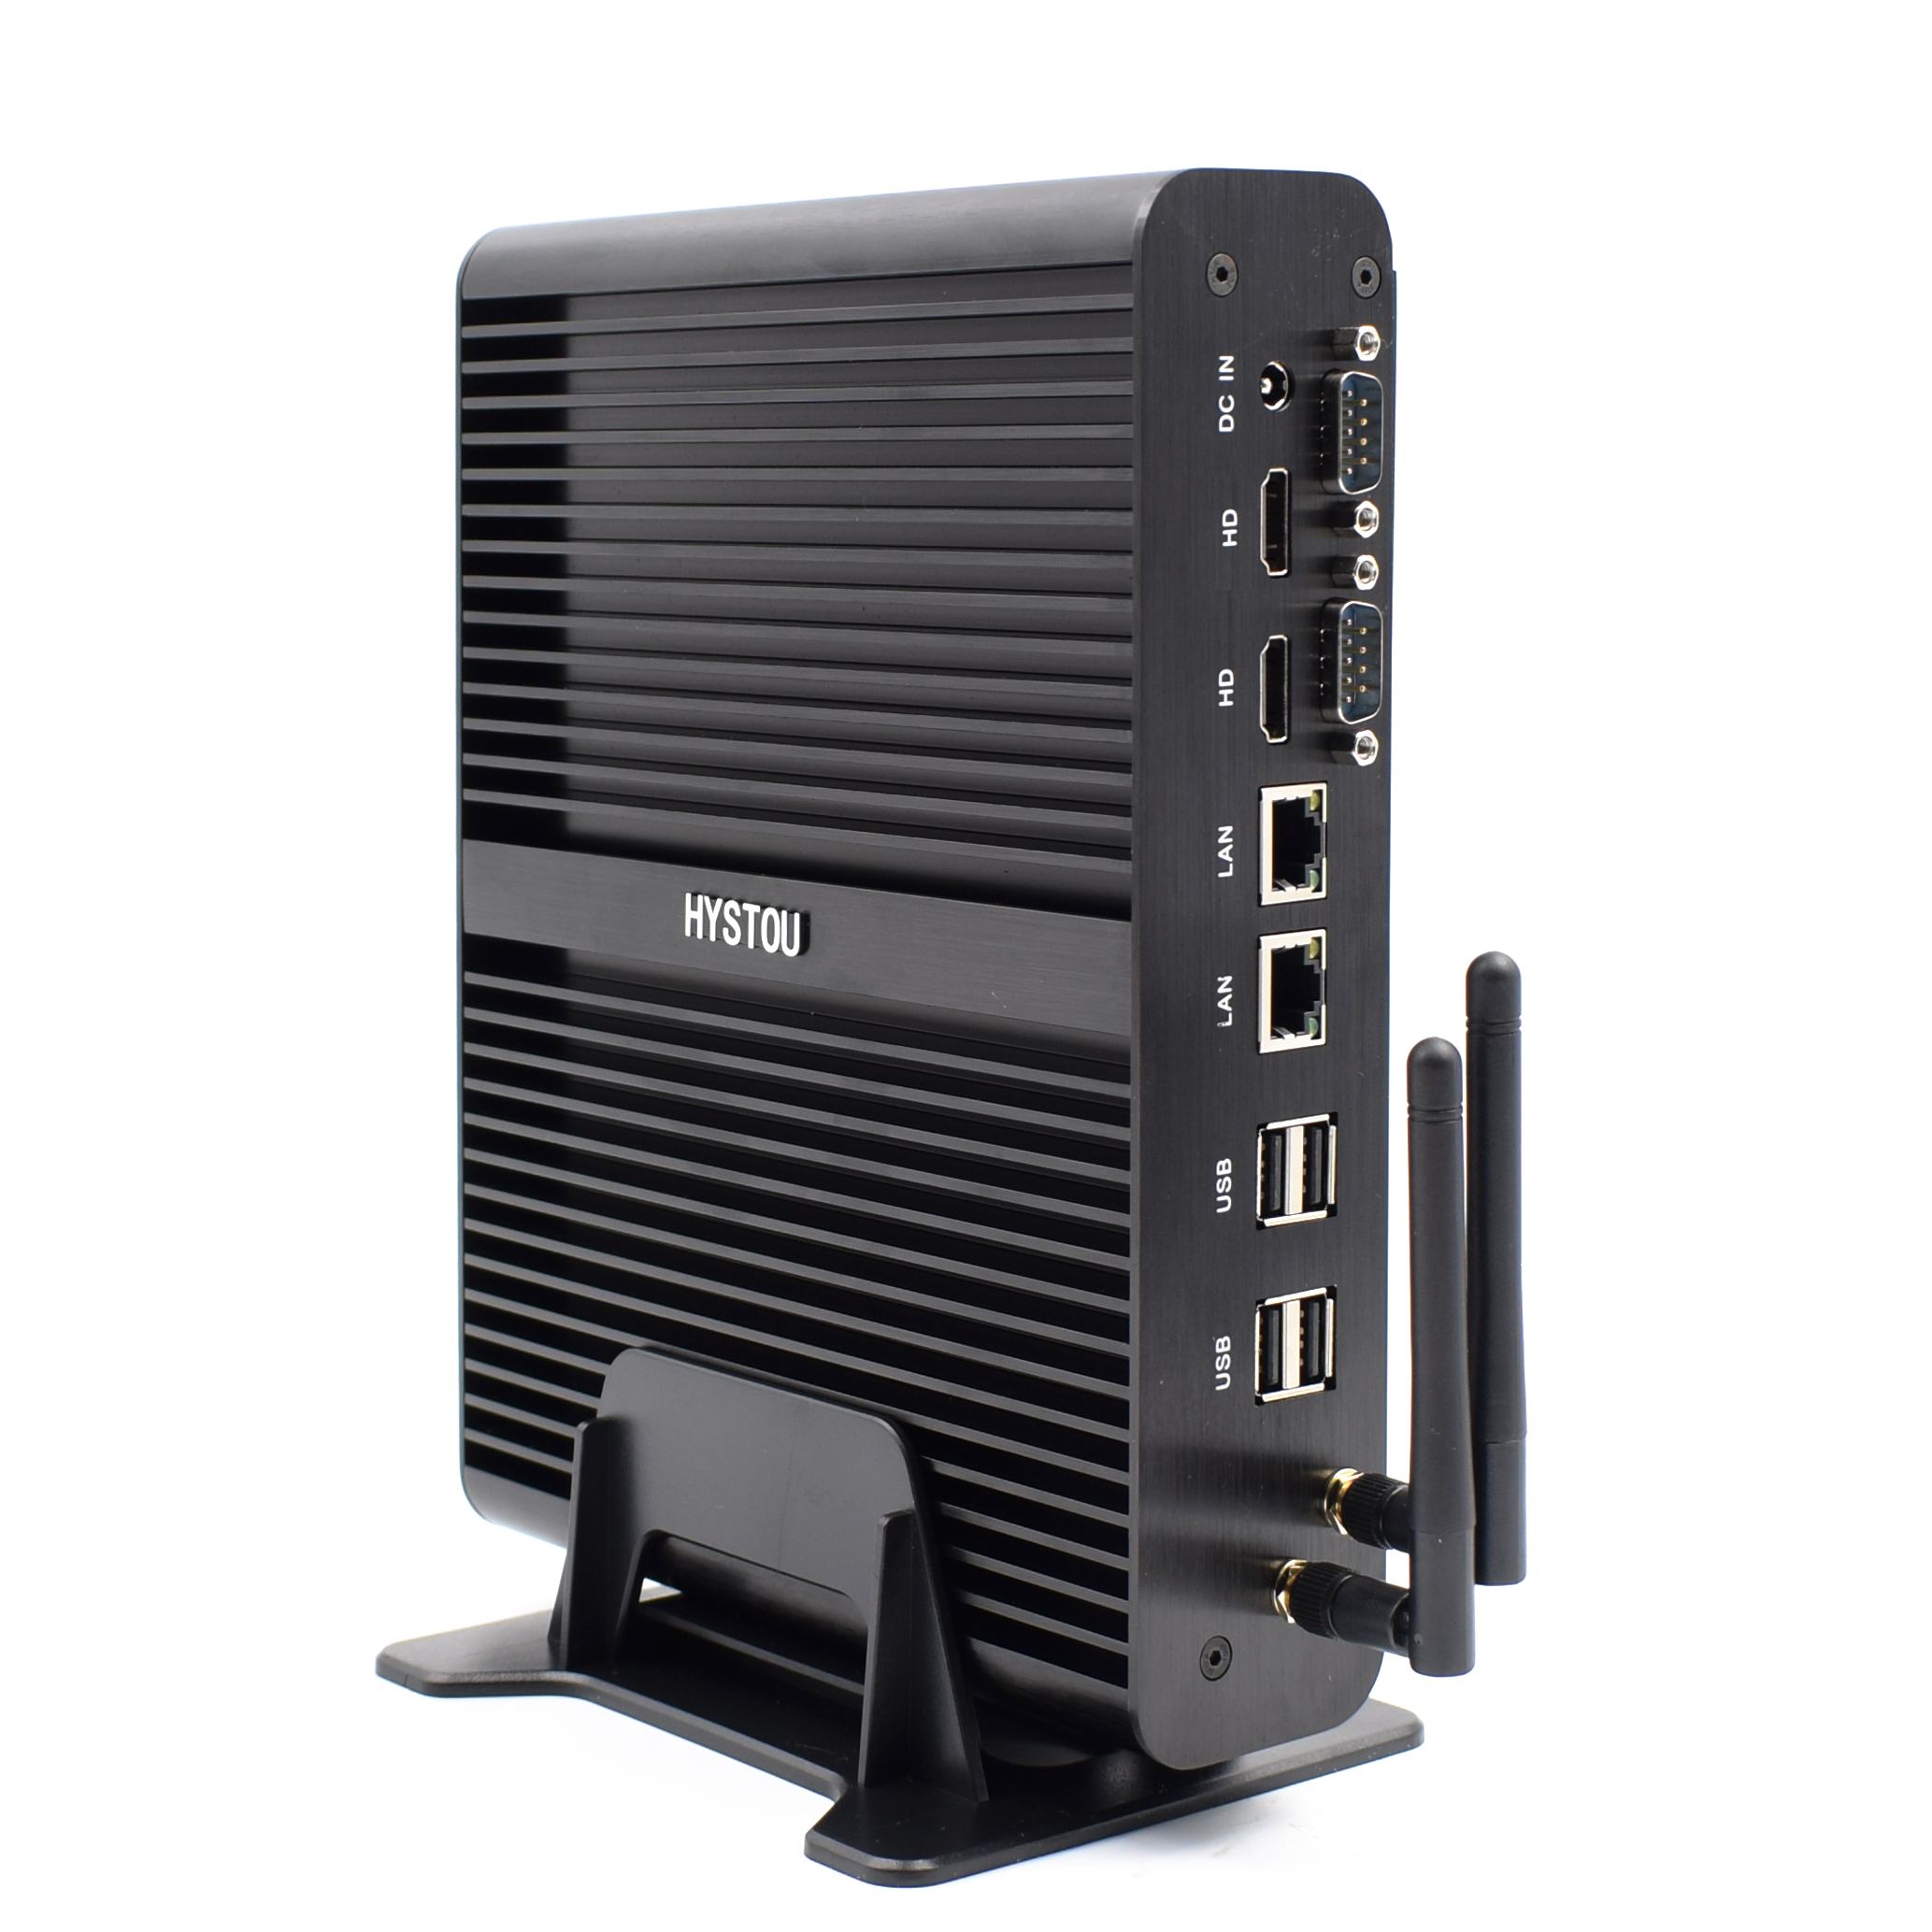 Small Tower <strong>computer</strong> all in one PC i7 gaming desktop barebone Server Intel Core 5500U micro pc Fanless Mini PC X86 low power 12V